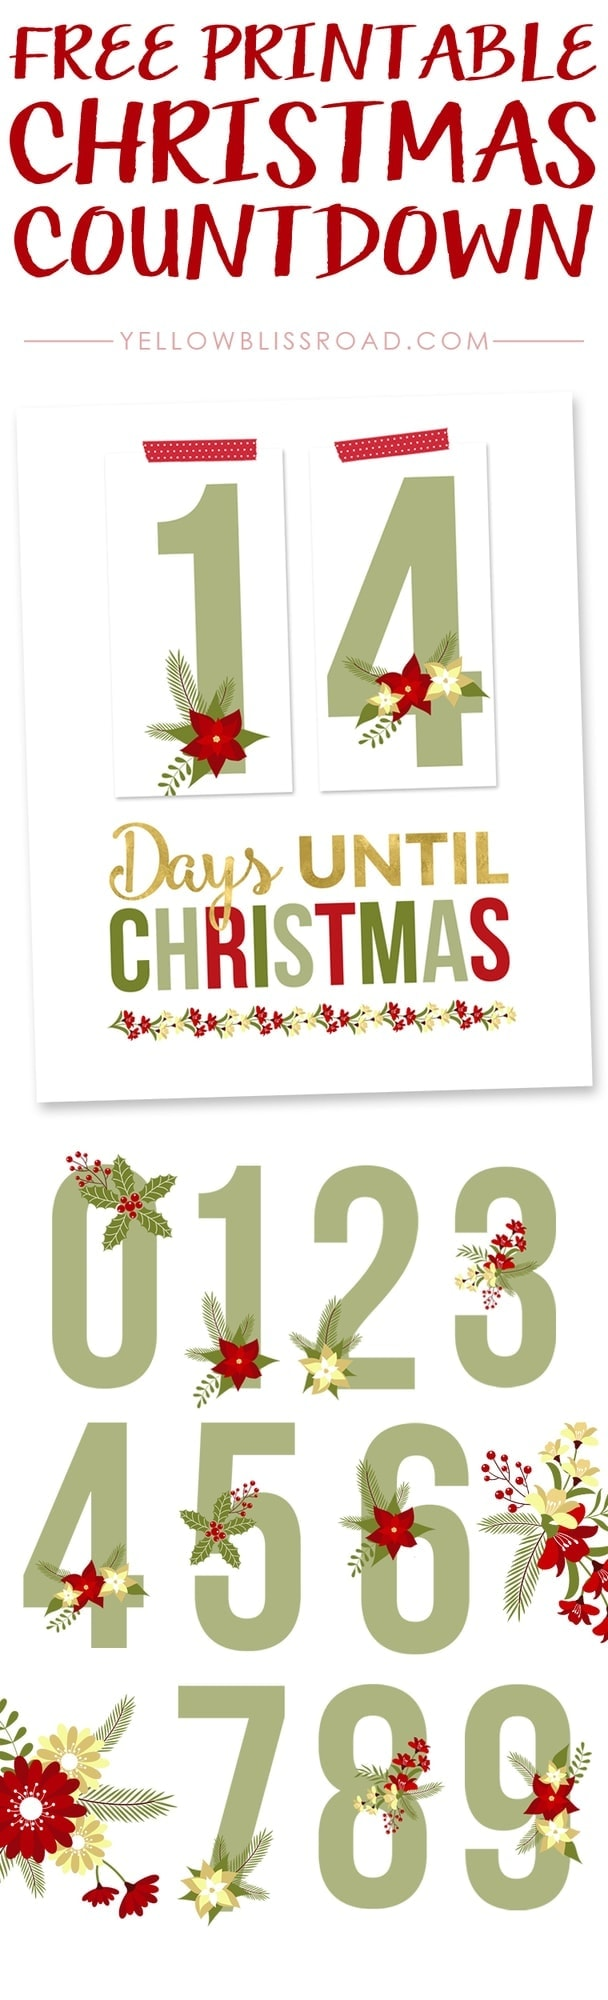 graphic regarding Countdown Printable identify Cost-free Printable Xmas Countdown - Yellow Bliss Highway